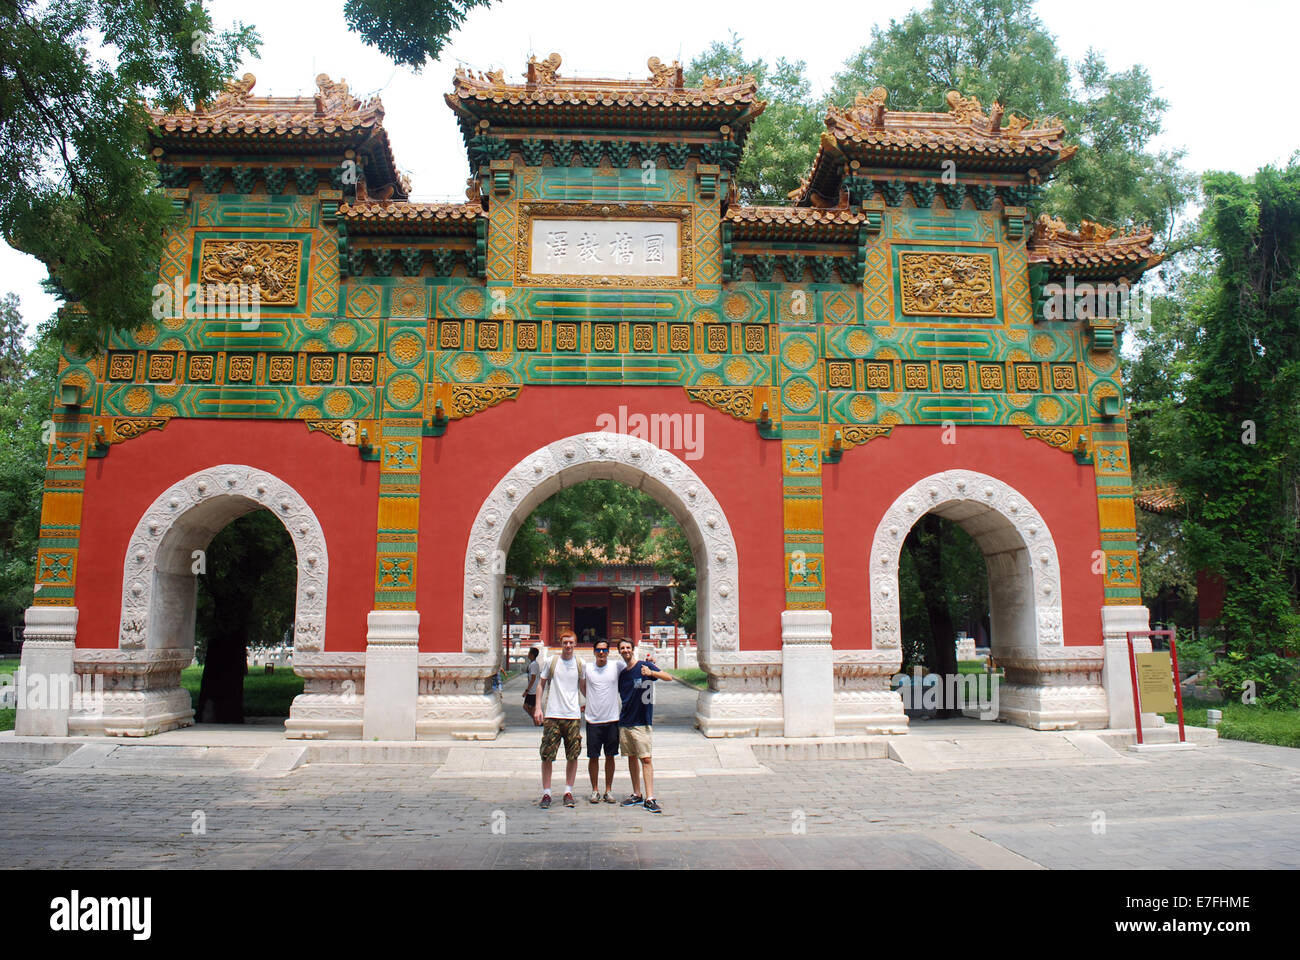 Les étudiants de l'Ouest, Temple de Confucius de Beijing, China 2014 Photo Stock